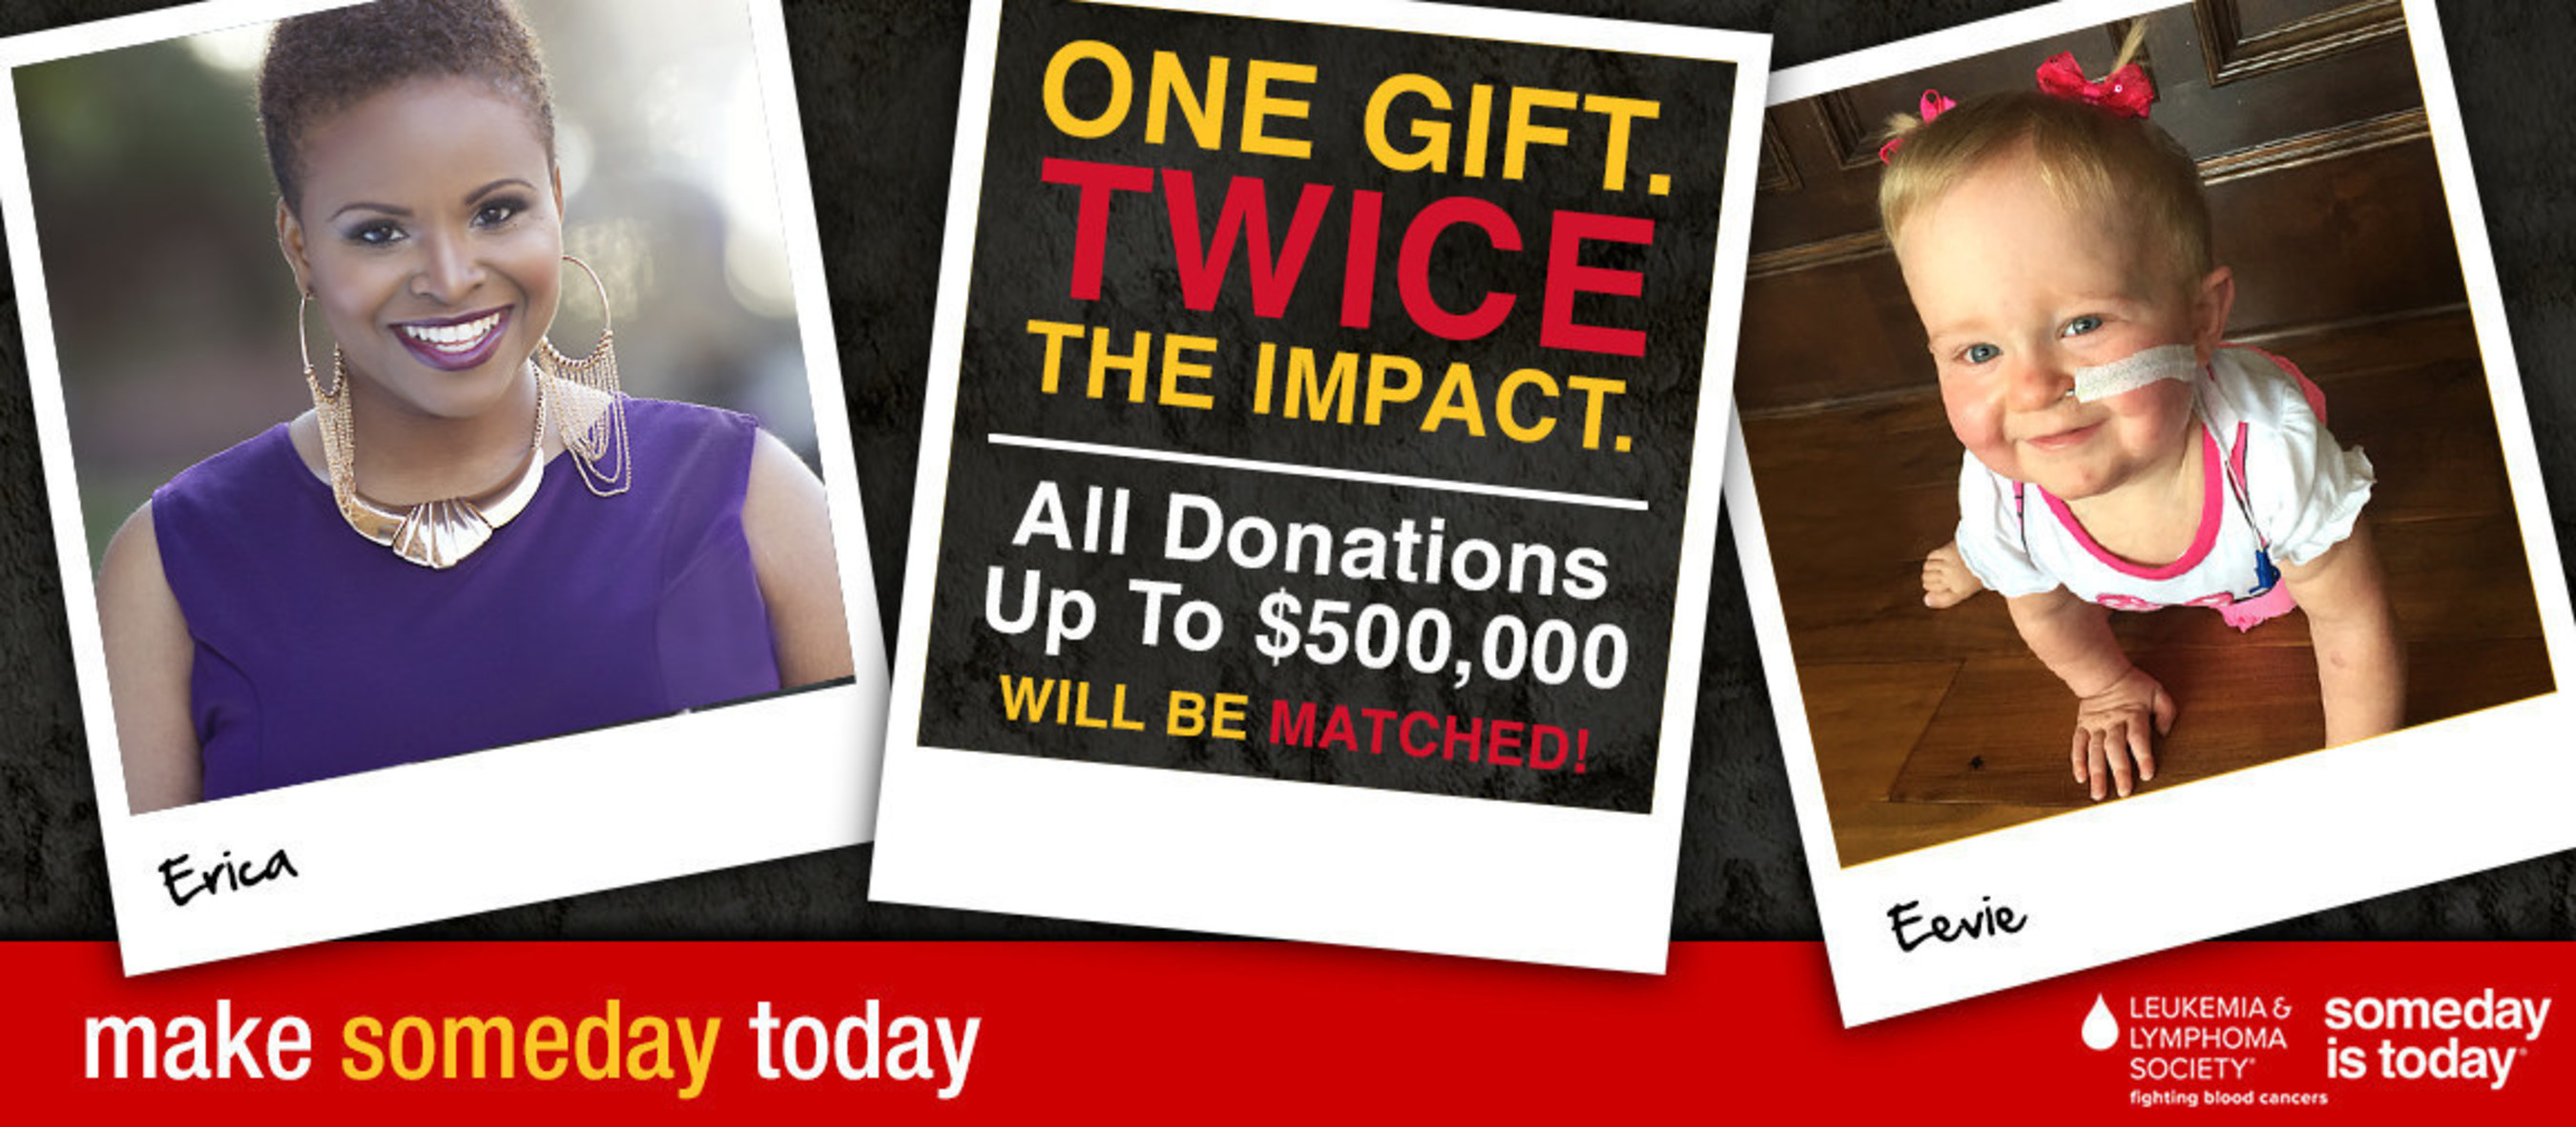 Blood cancer survivors, Erica and Eevie are alive today because of research funded by The Leukemia & Lymphoma Society.